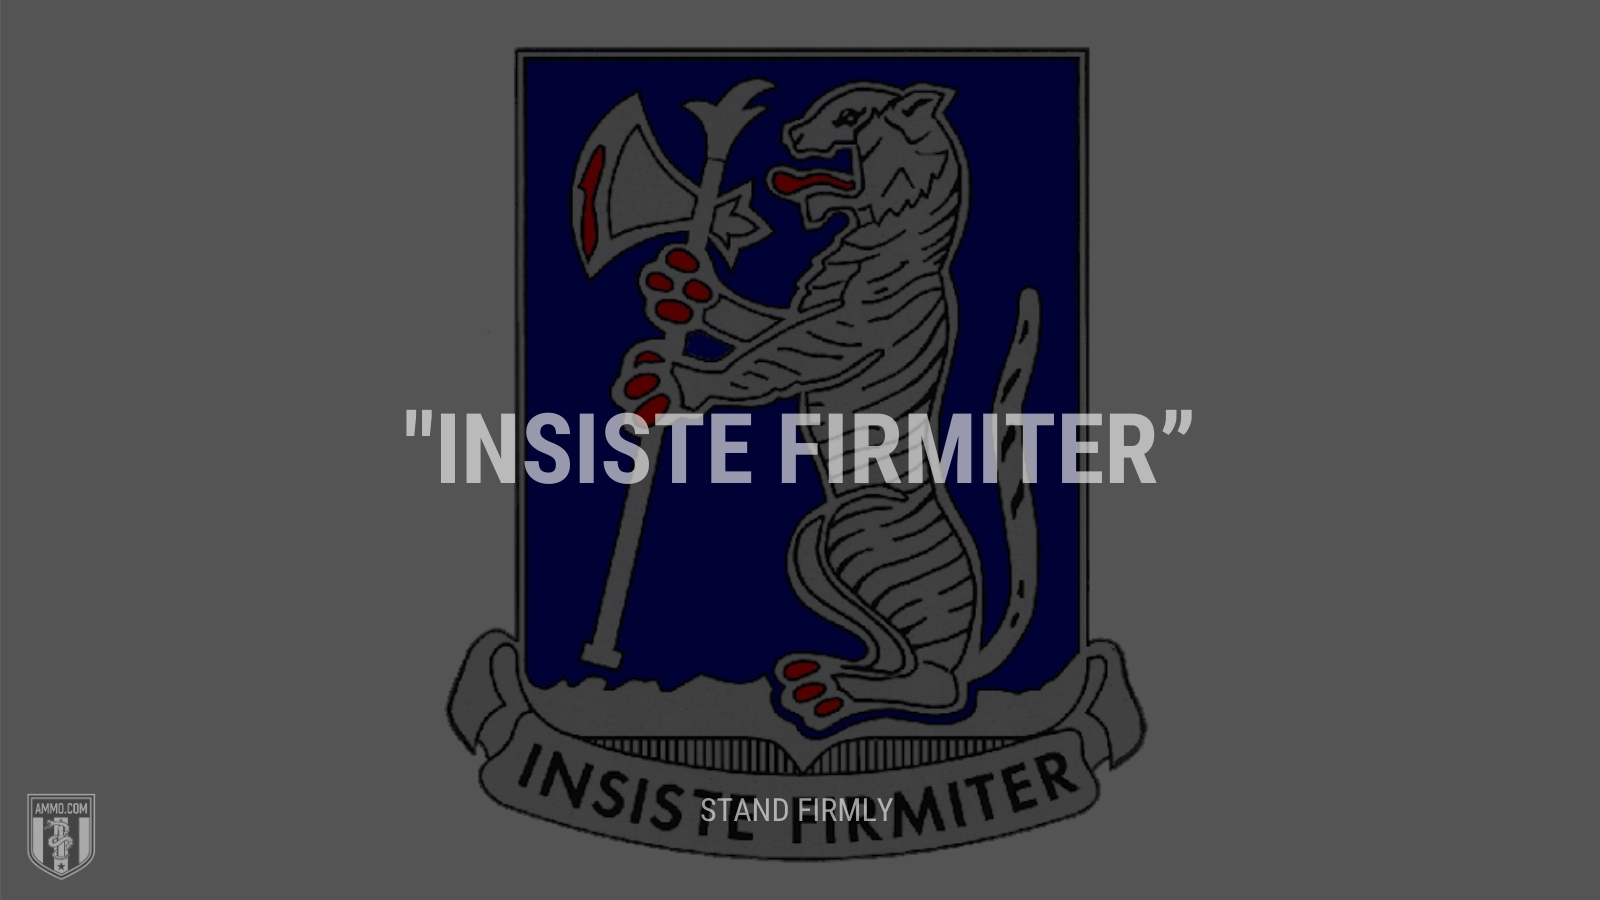 """""""Insiste firmiter"""" - Stand firmly"""